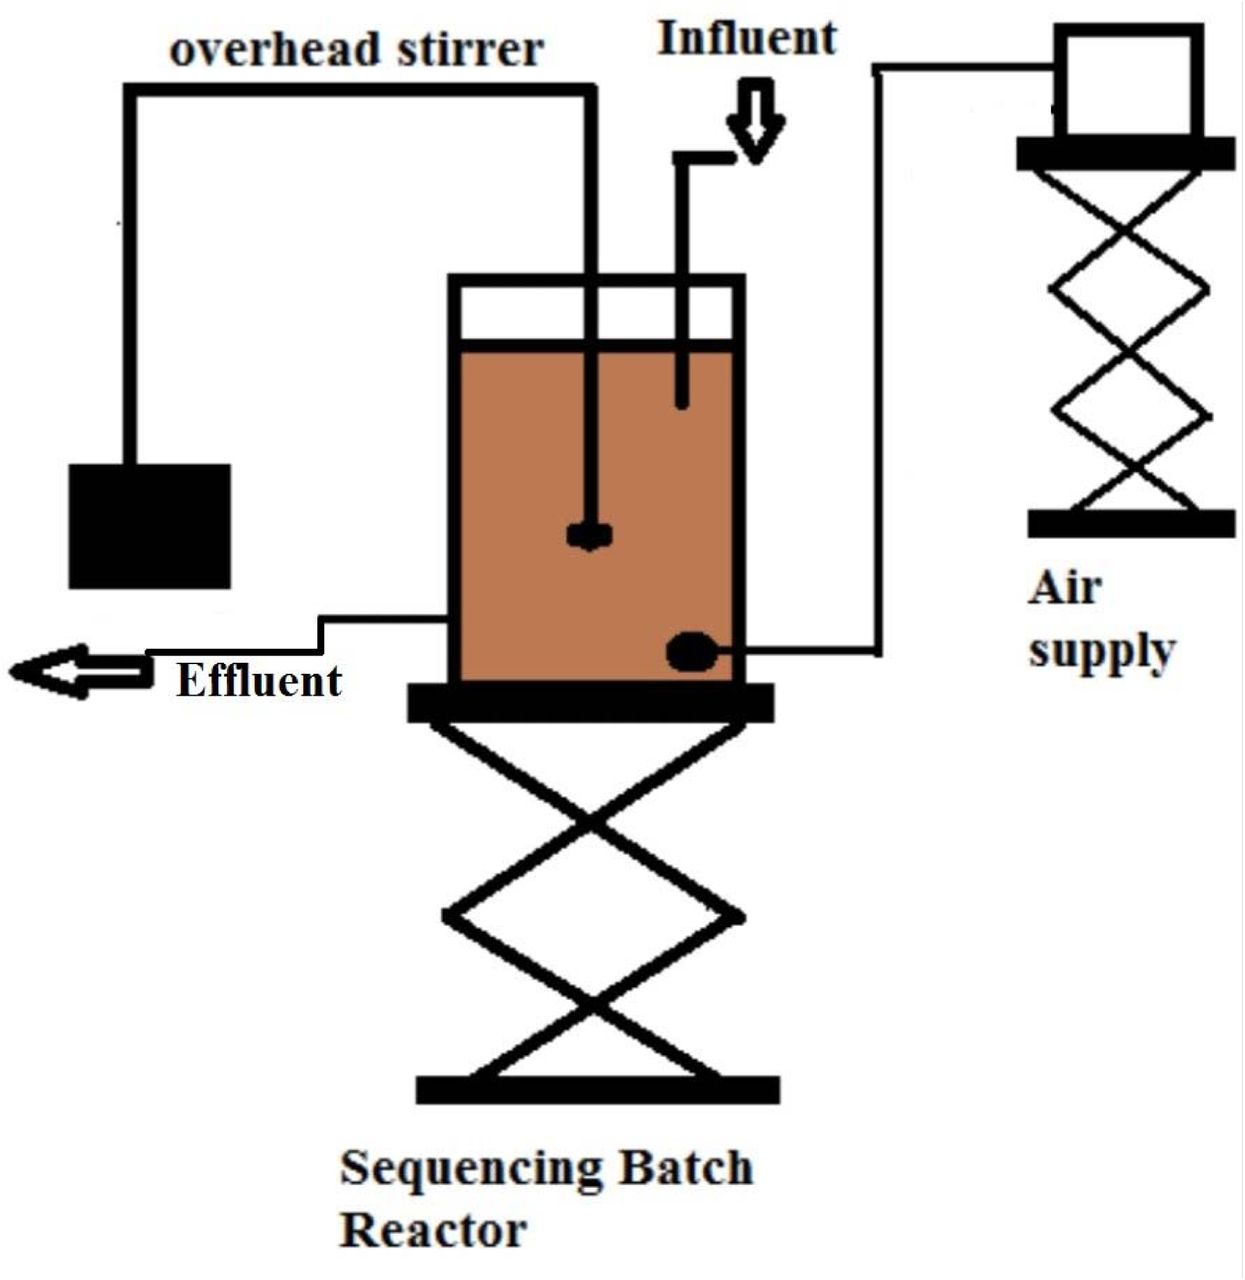 Treatment of Mixed Azo Dyes in an Aerobic Sequential Batch Reactor